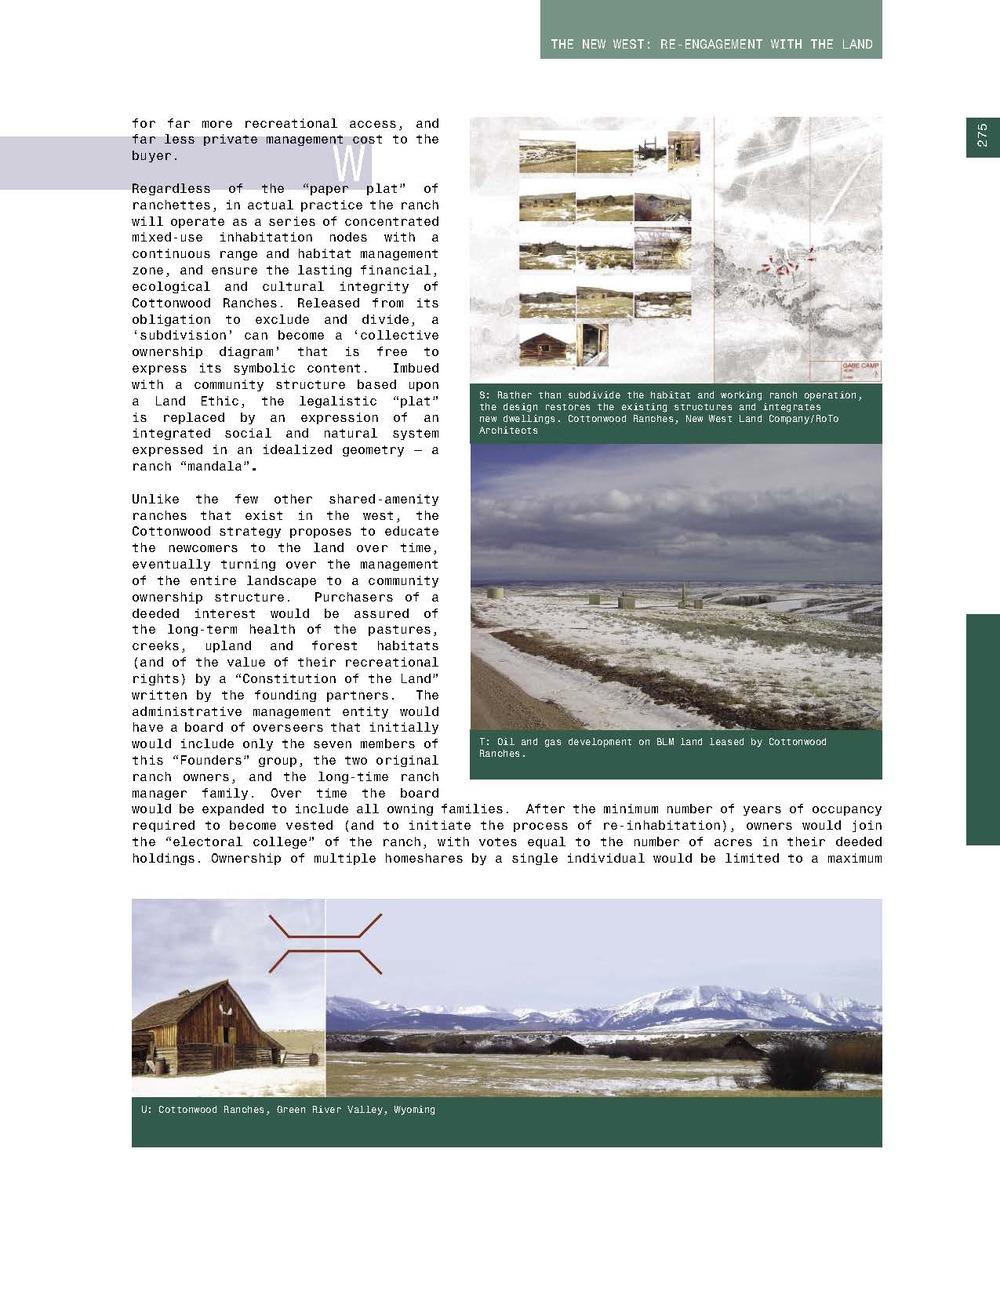 UT New West Land Co Article_Page_22.jpg